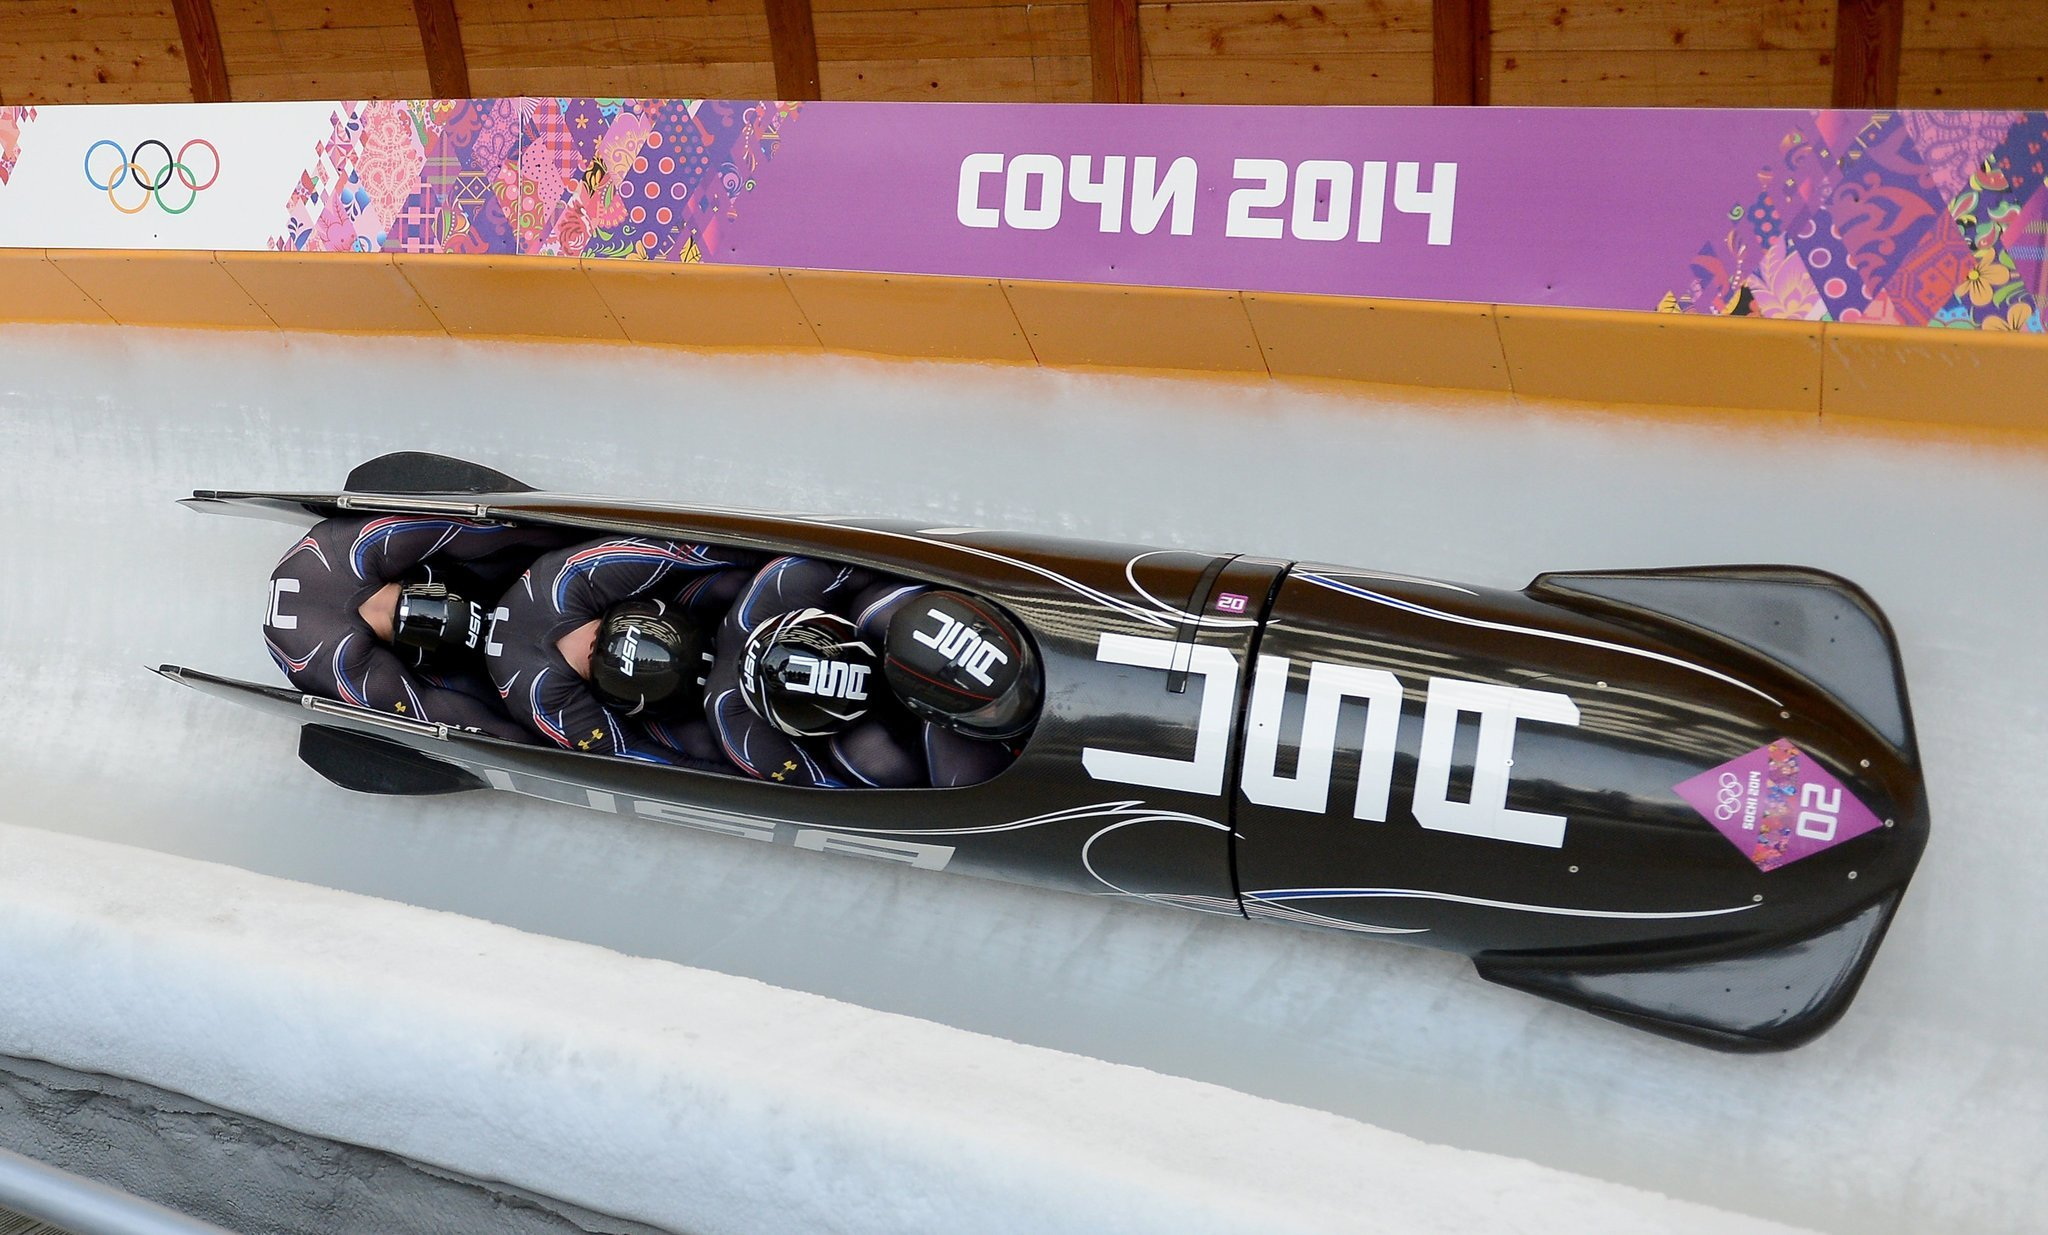 US bobsledder Olympics in Sochi wallpapers and images 2048x1235